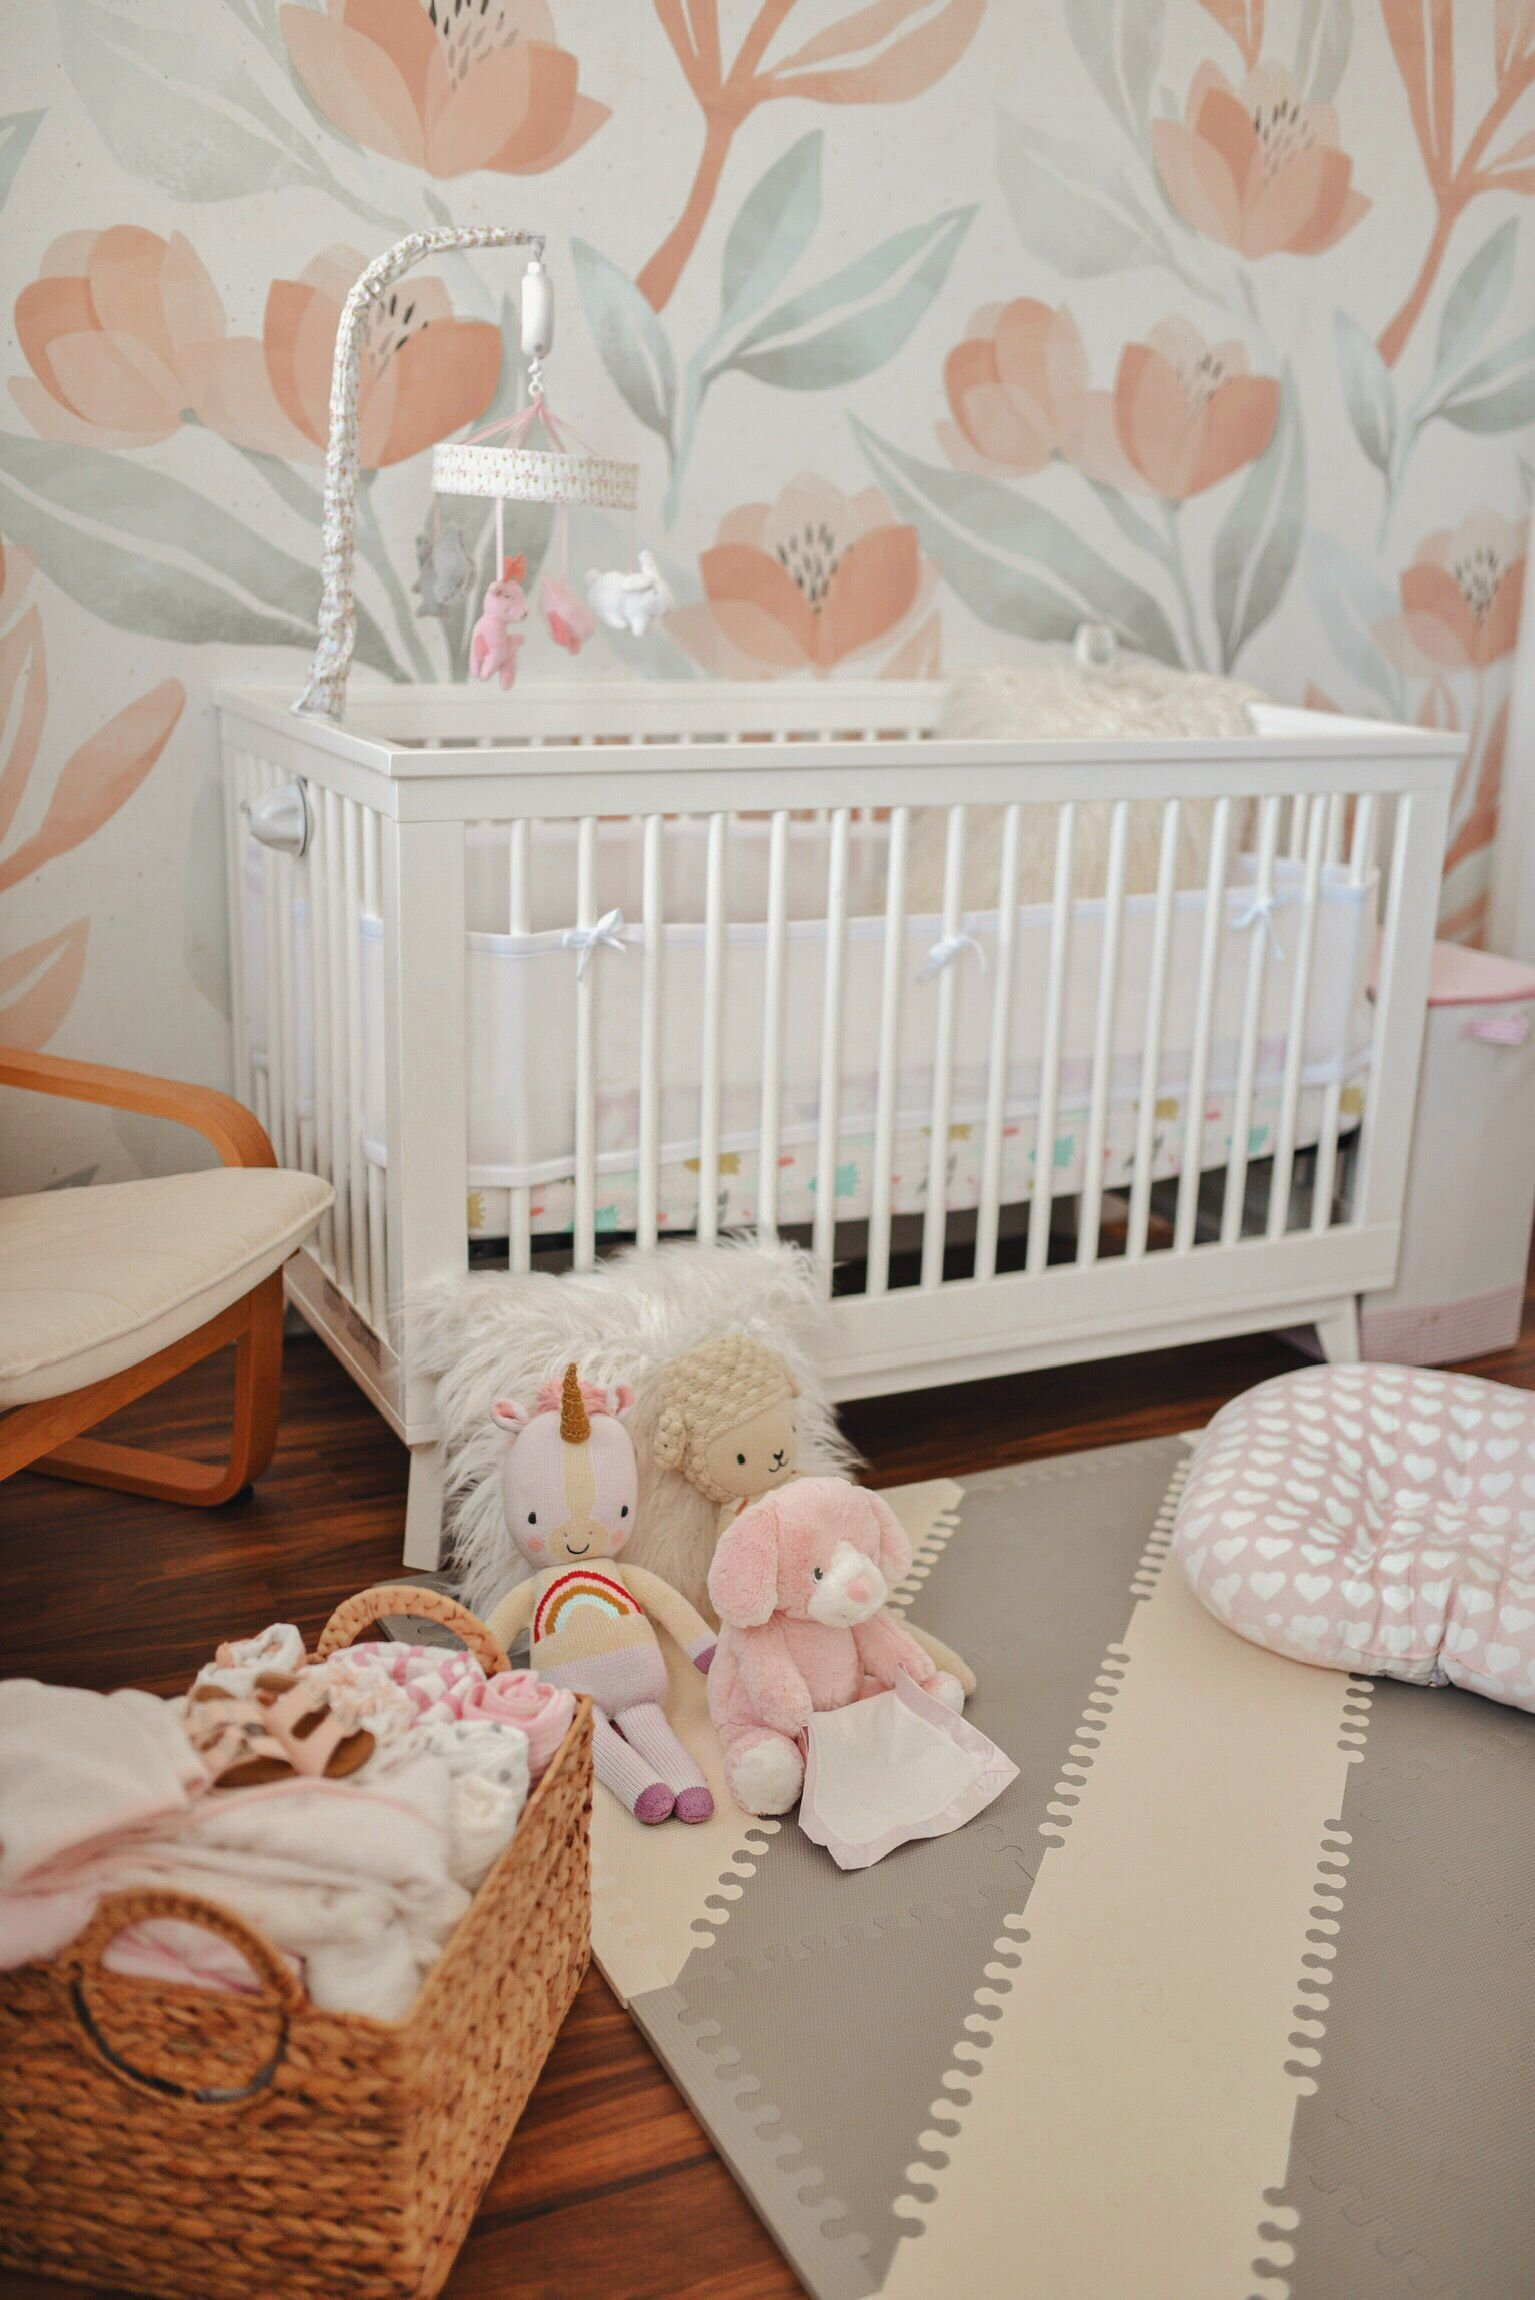 THE NURSERY ITEMS YOU NEED TO ADD TO YOUR BABY REGISTRY ...